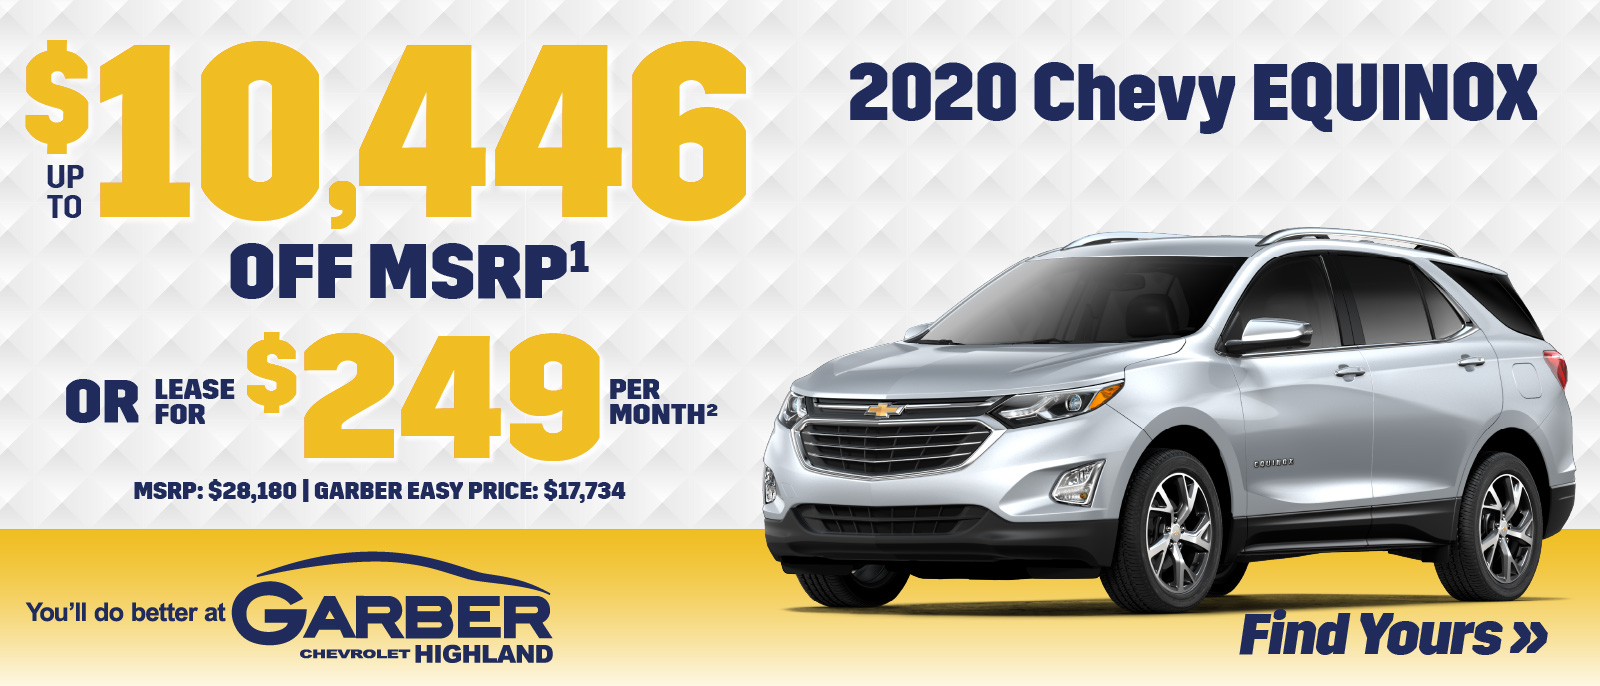 2020 Chevy Equinox | SAVE up to $10,446 off MSRP or LEASE for $249 per month | MSRP $28,180 | GARBER EASY PRICE $17,734